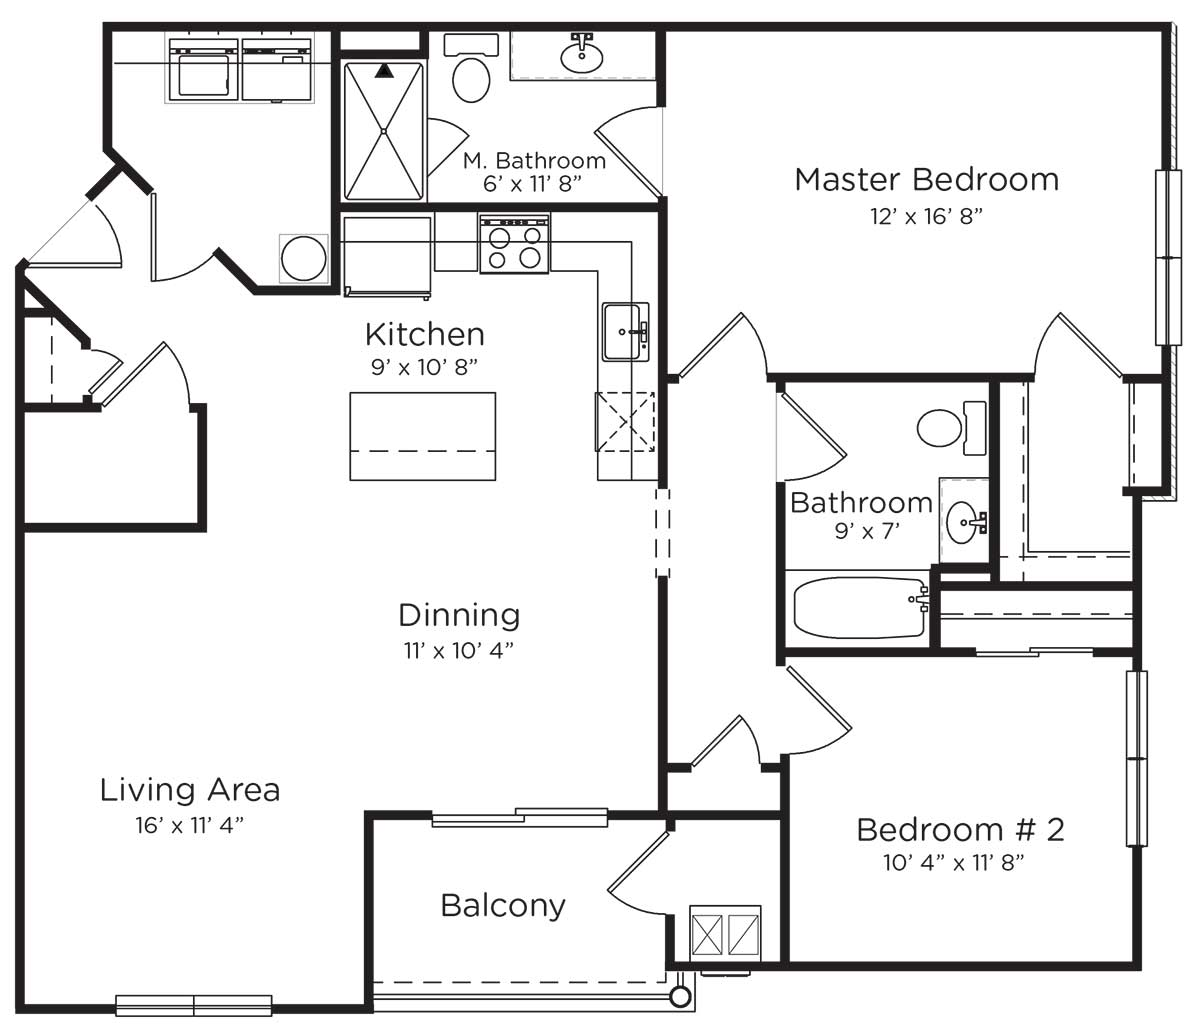 U Condo Floor Plan likewise Efficient Floor Plans moreover 51 Lower Simcoe Floor Plans together with Foxwoods Casino Floor Plan further Starship Floor Plans. on ikea house plants